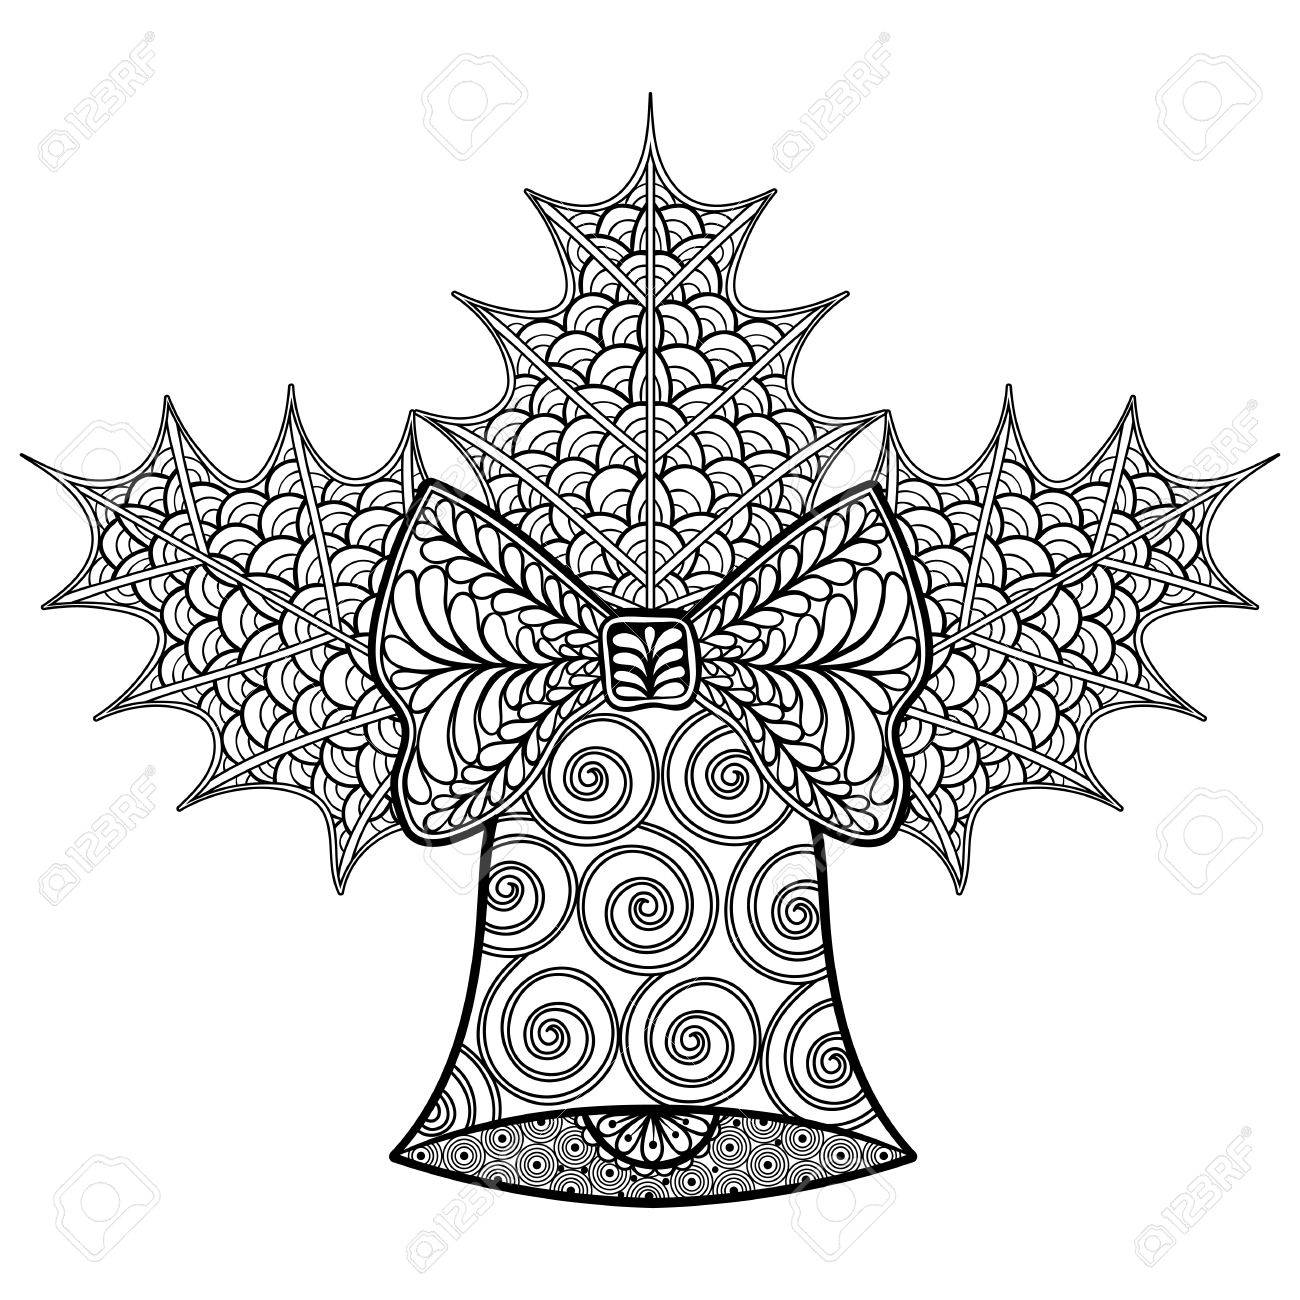 coloring pages with christmas decorative bell and mistletoe zentangle patterned illustration for adult anti stress - Mistletoe Coloring Pages